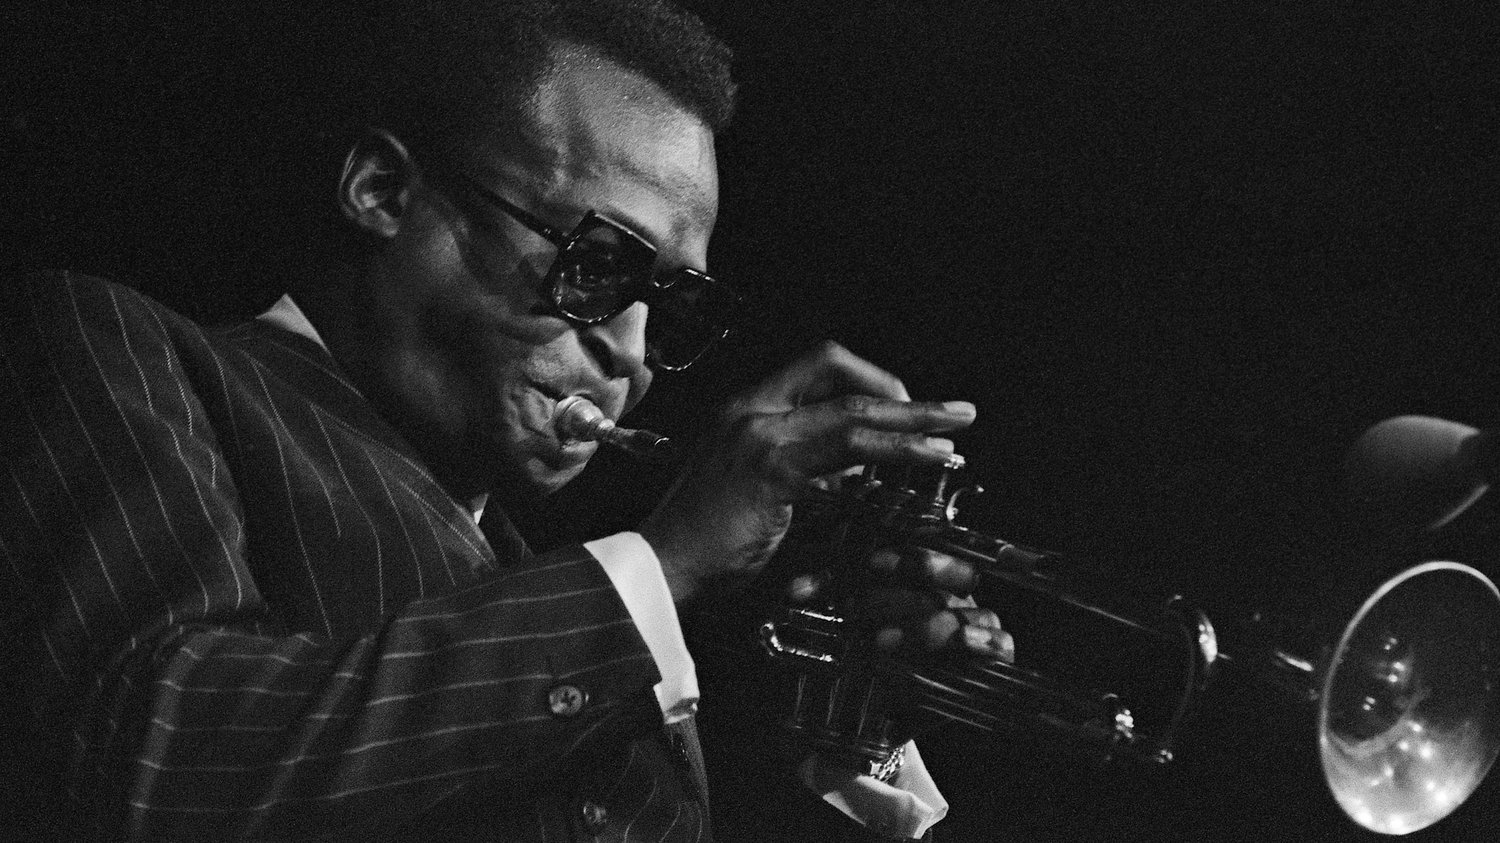 Freedom Jazz Dance: The Bootleg Series Vol. 5 provides listeners rare access to the Miles Davis Quintet's creative process. Veryl Oakland/Courtesy of the artist